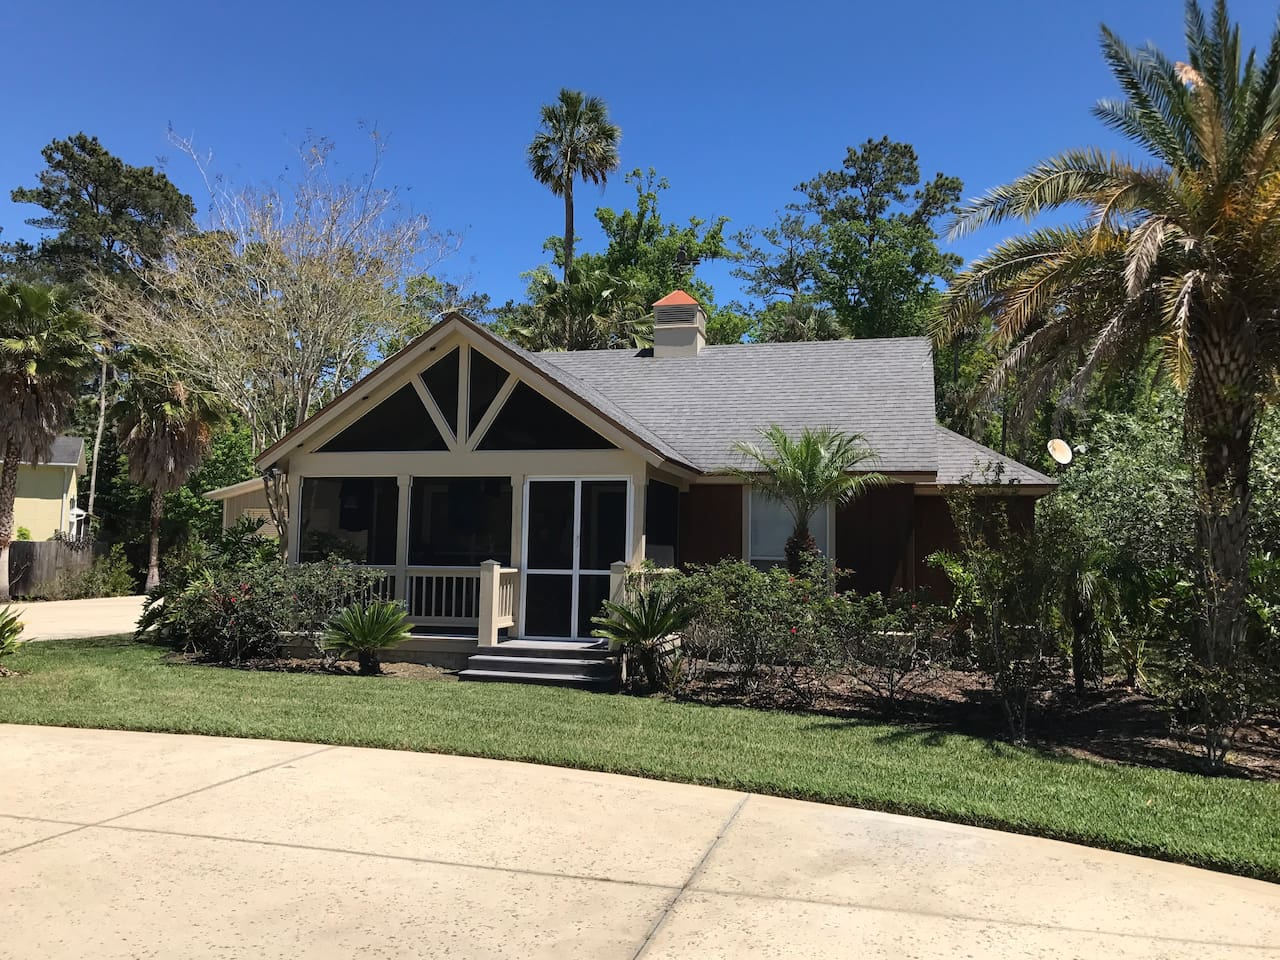 Charming Palm Valley Cottage on 2 Acre Mini Estate